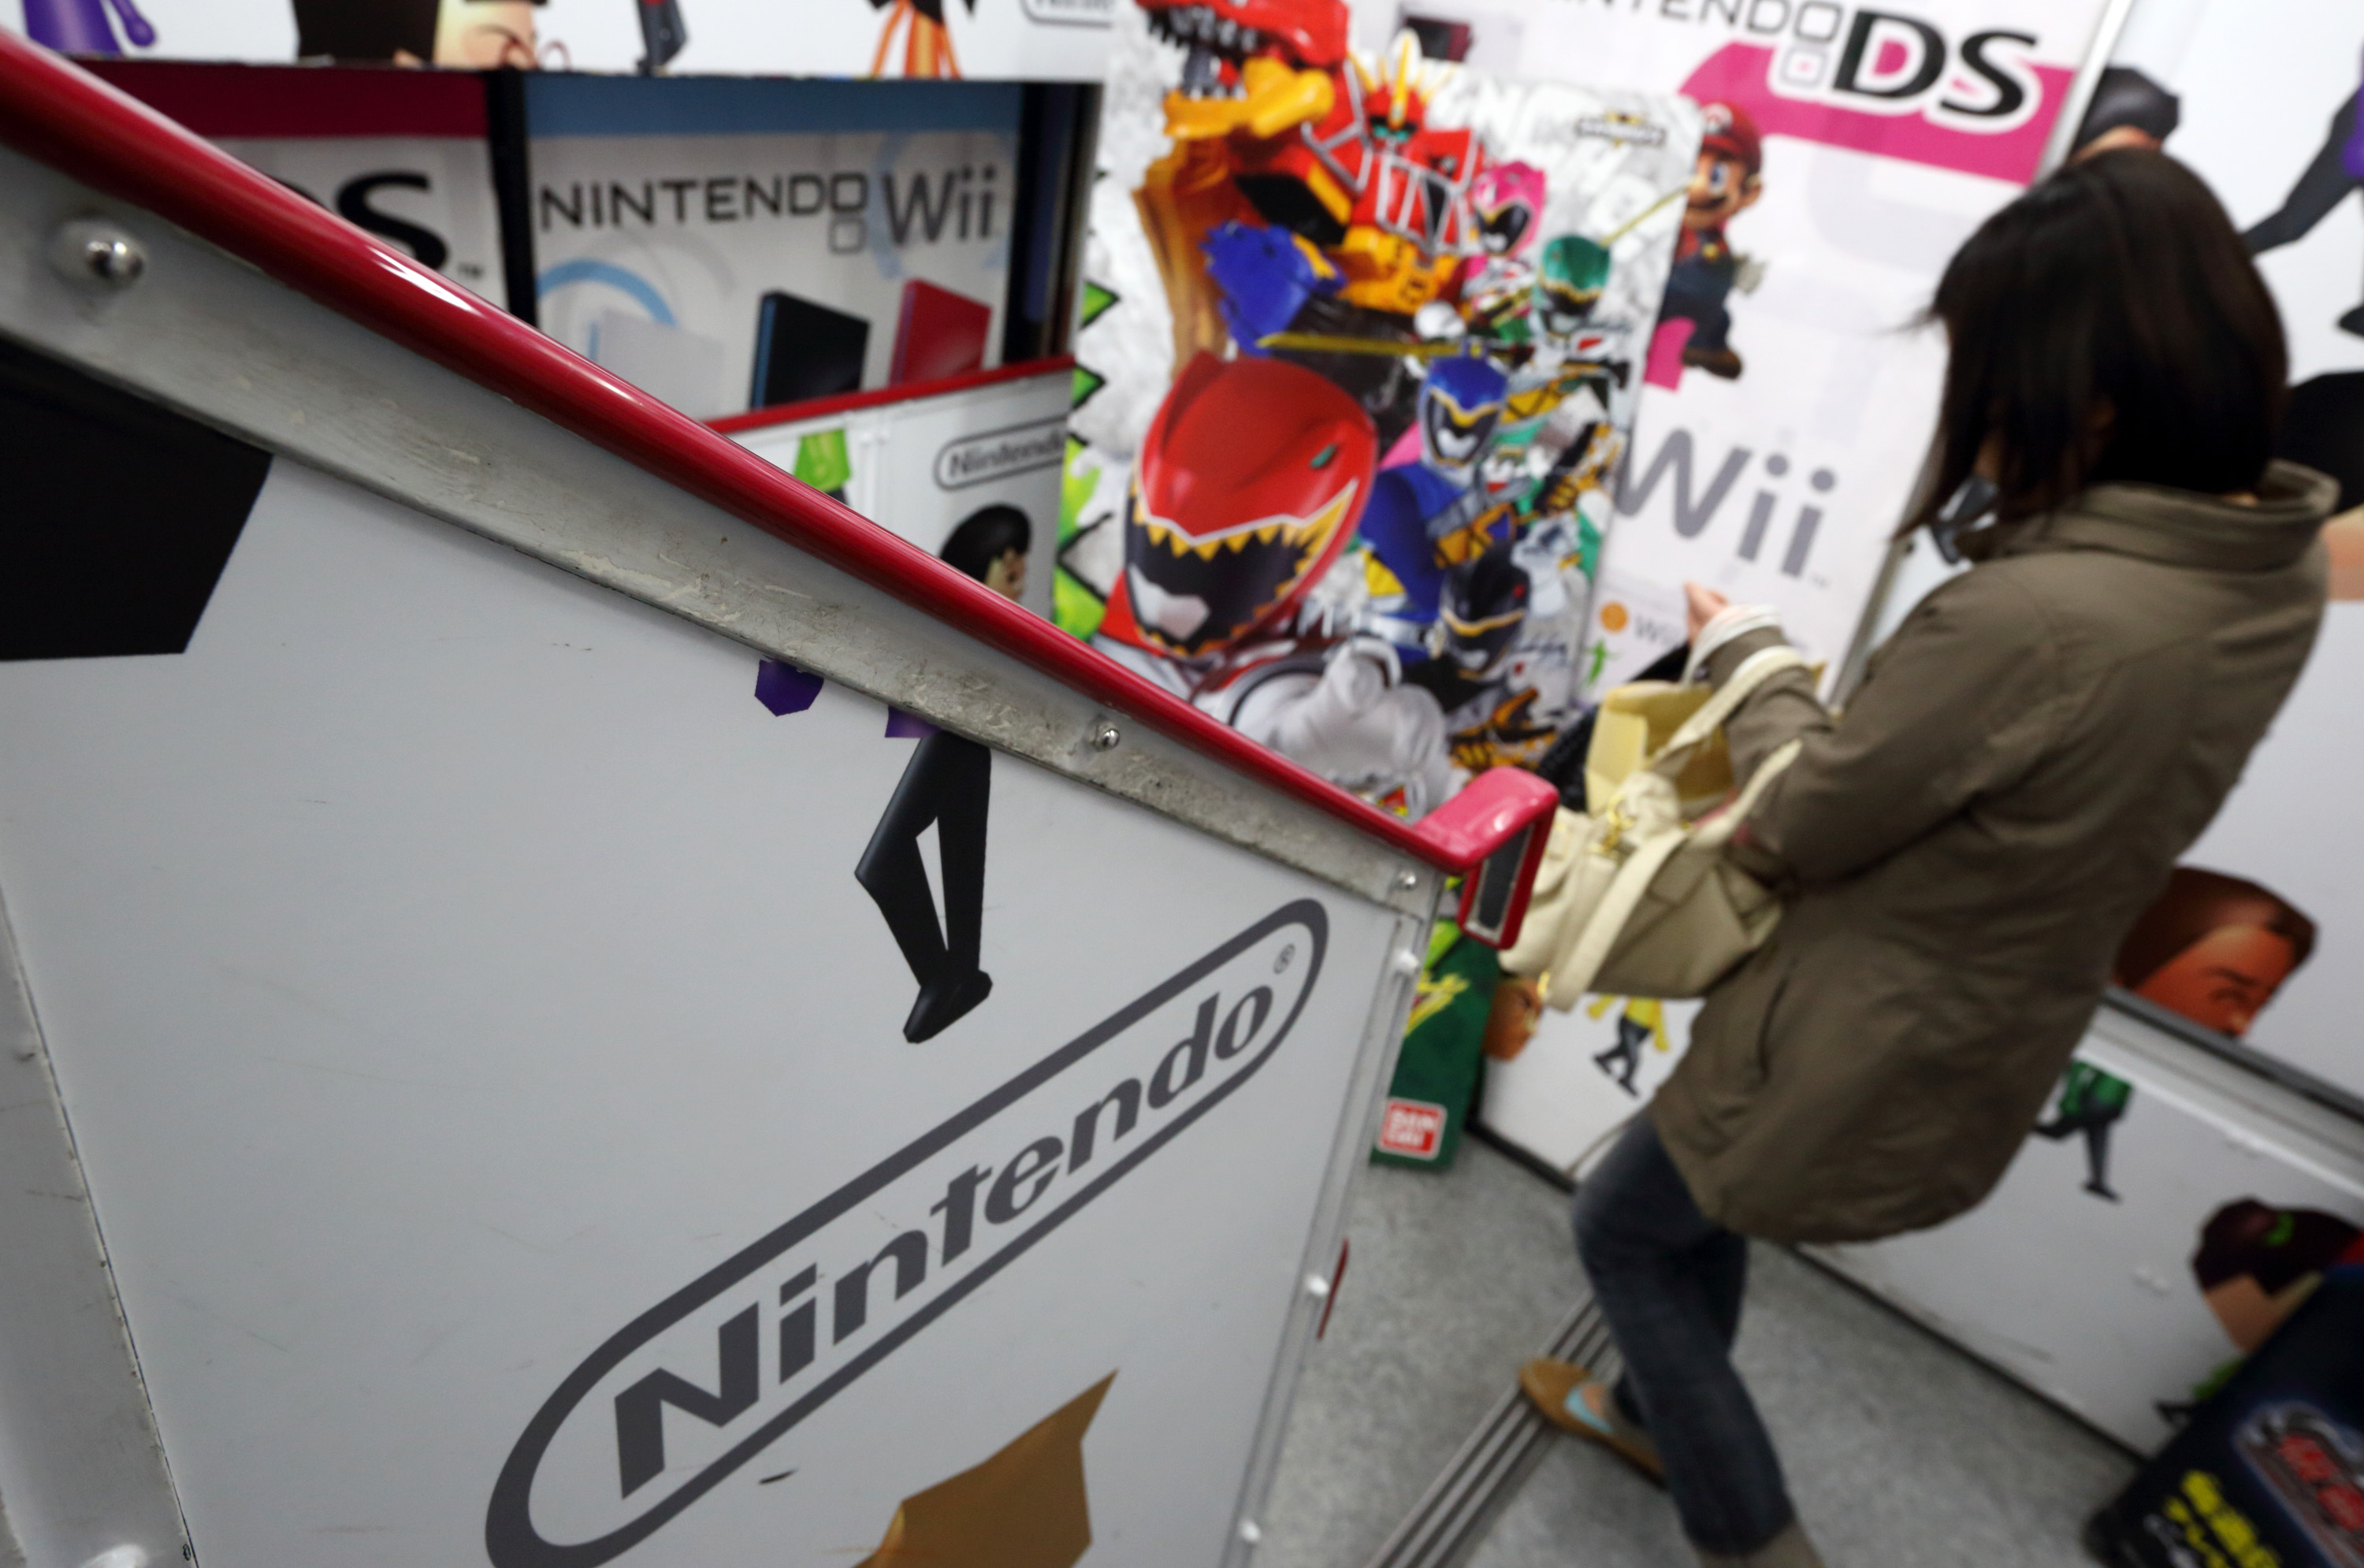 A woman walks past the Nintendo Co. logo displayed at an electronics store in Tokyo, Japan, on Tuesday, April 23, 2013.